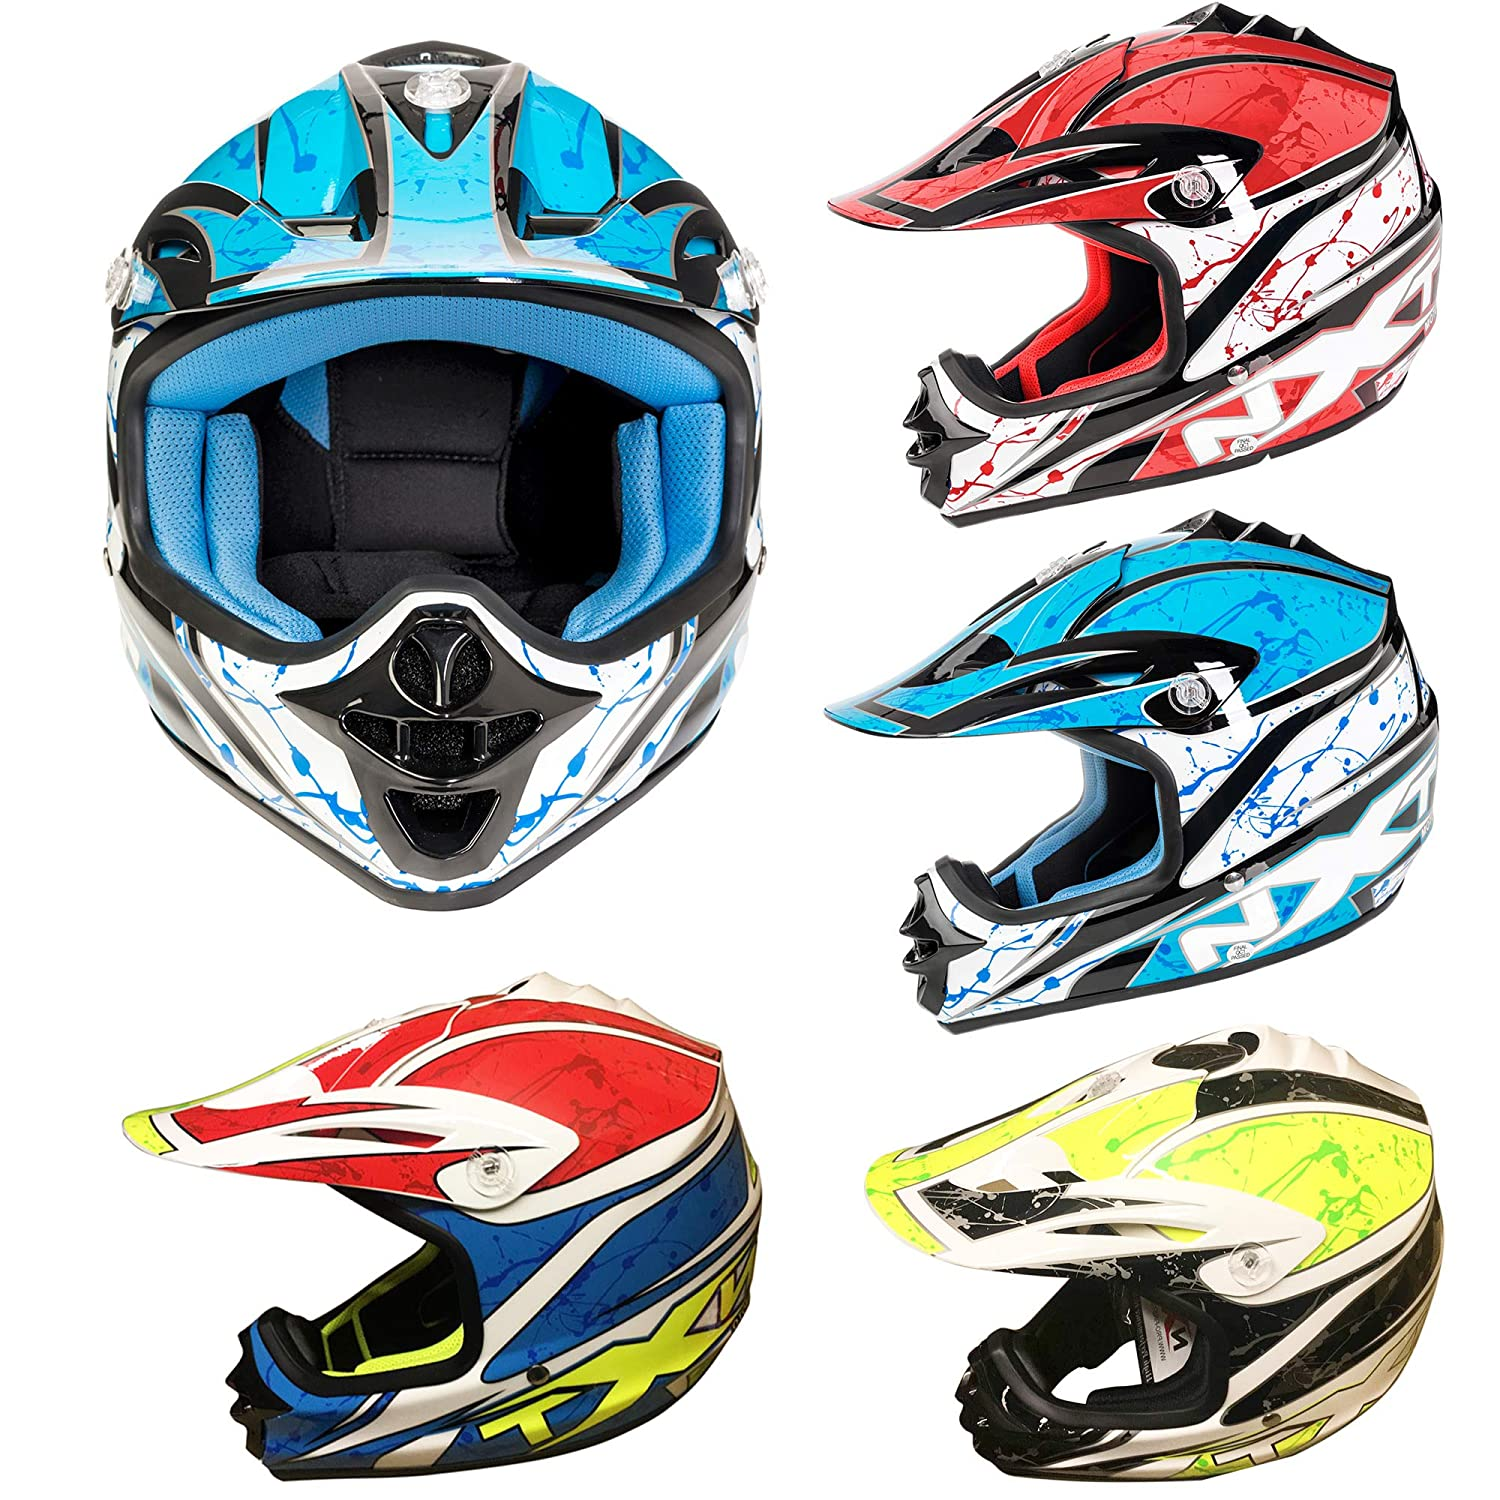 Kids Motorbike Helmets Motorcycle Scooter MX Helmet Off Road Racing Junior Childern Full Face Protection Blue XXXS 4 Different Color 49-50 cm